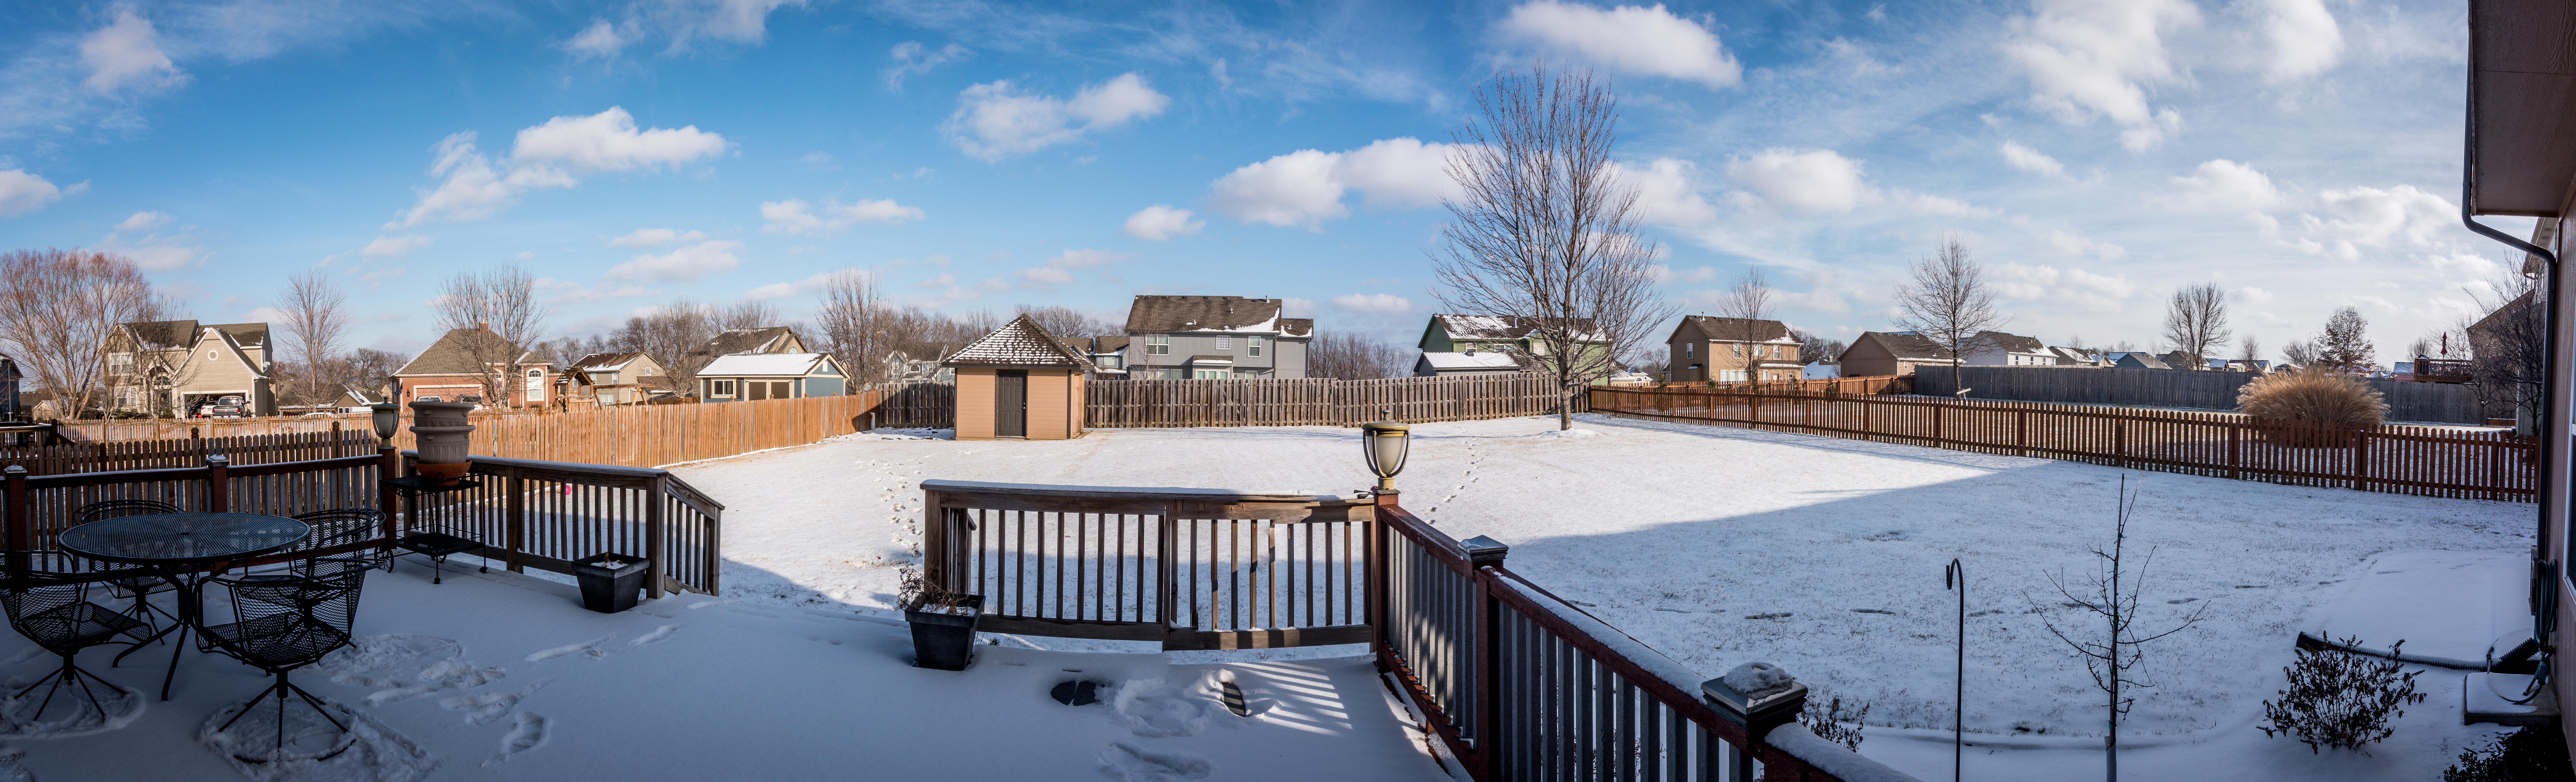 4421 N 122nd St, KCK - exterior-9